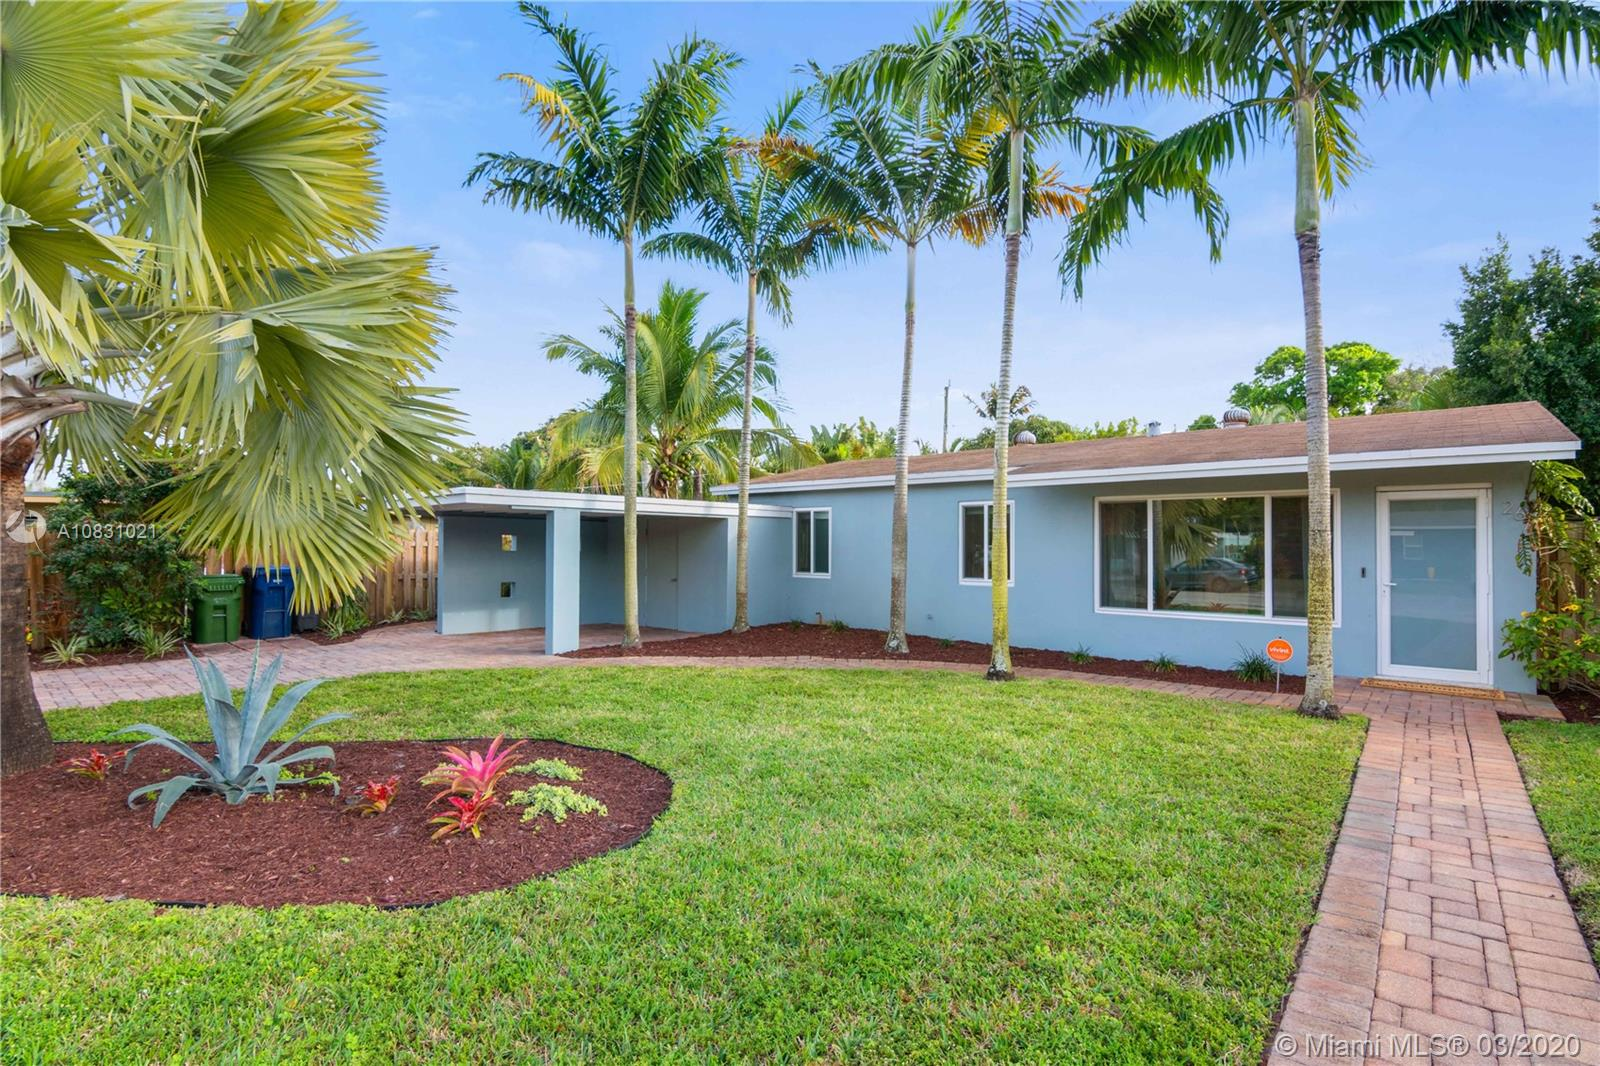 ***SQUARE FOOTAGE IS ACTUALLY 1057*** Mid century modern home in a quiet cul de sac in beautiful Wilton Manors. The home is completely remodeled with an open floor plan, modern kitchen and marble guest and en-suite bathrooms. Spacious interior, 3 beds, 2 baths. Site offers a large, private backyard with swimming pool and deck with shower. New impact windows and doors, new central a/c, refinished original terrazzo floors, and state of the art kitchen appliances. Carport with washer and dryer and room for extra storage. Sprinkler system ran by well not public water! Located within close distance of the shops, restaurants and entertainment district of Wilton Drive.